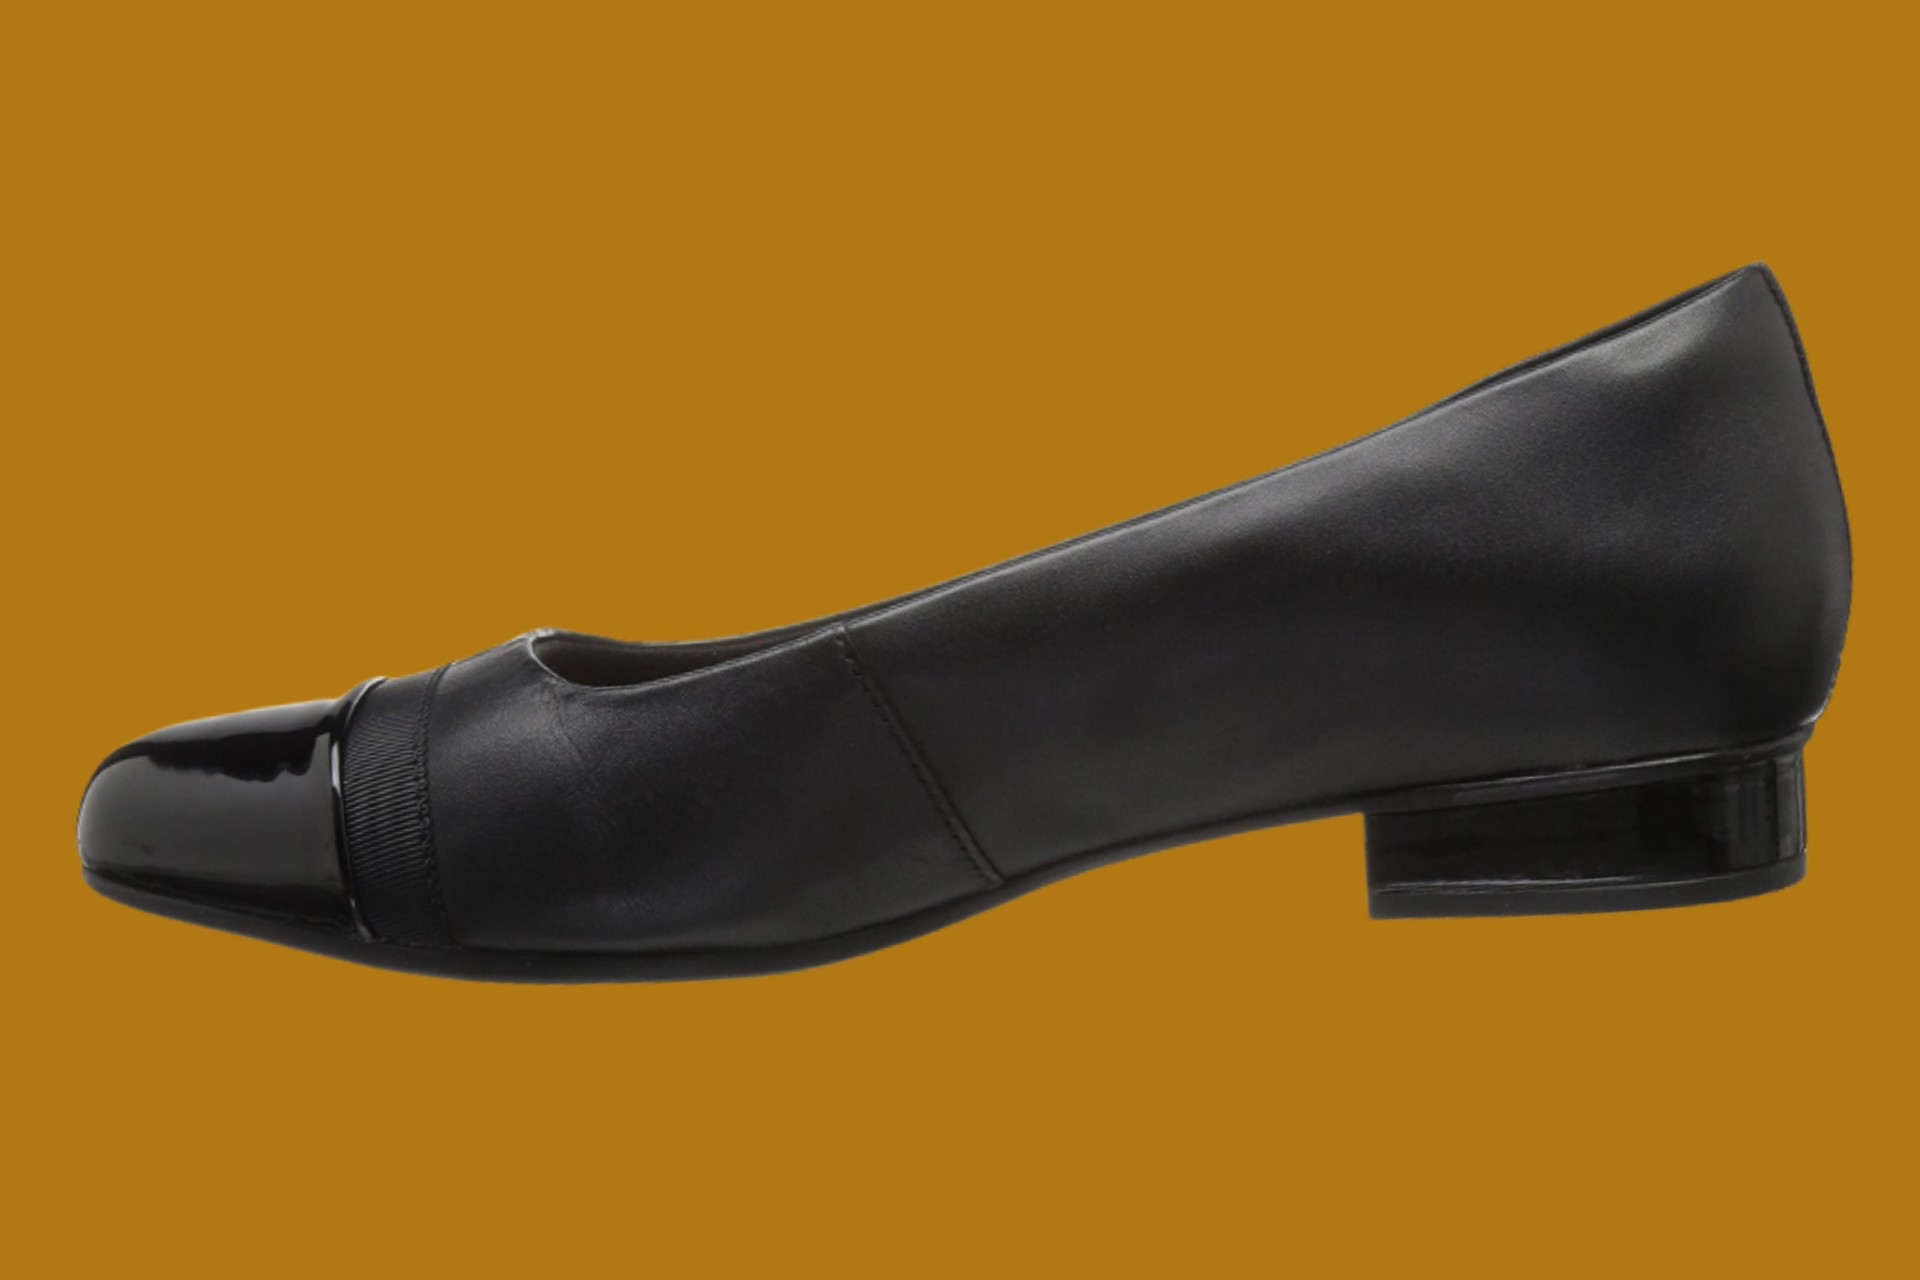 Best office shoes for women for plantar fasciitis